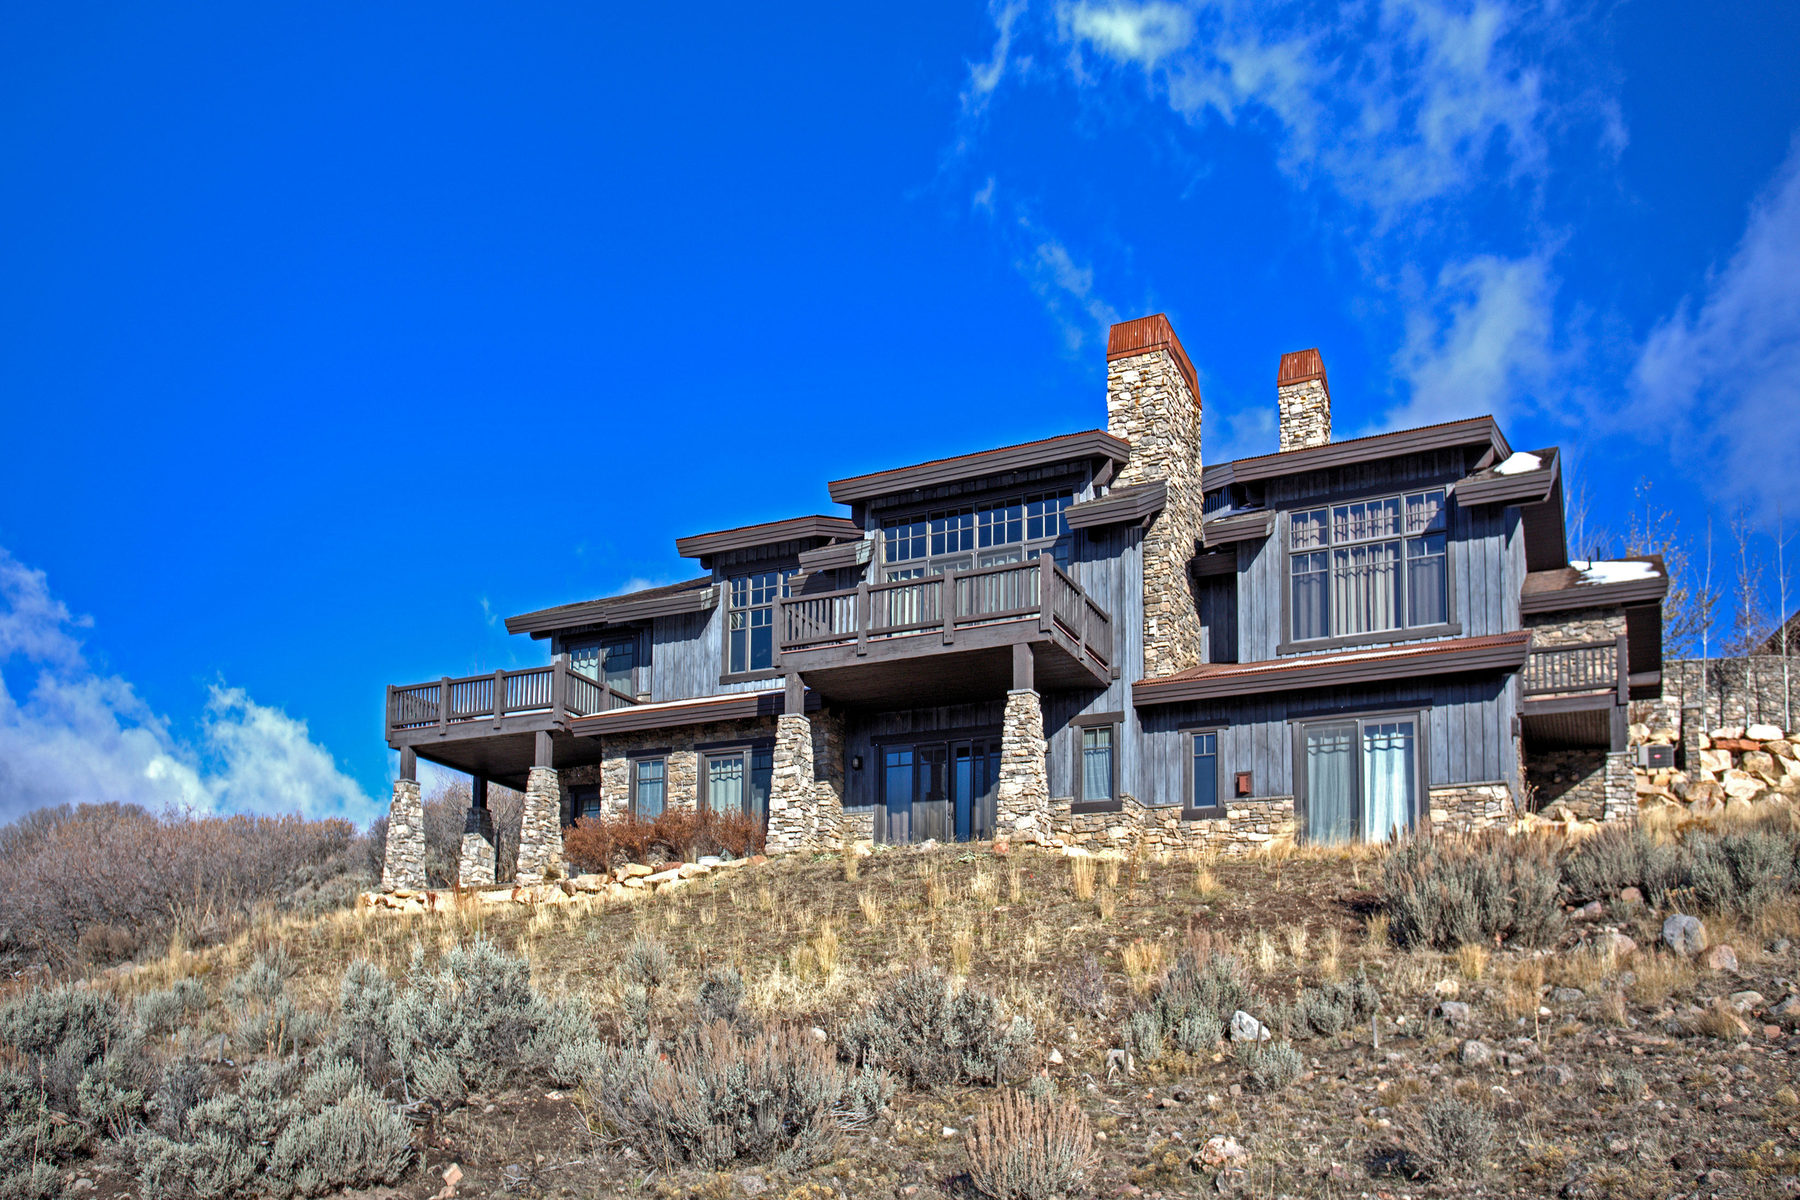 Casa Unifamiliar por un Venta en Wide Open, Wonderful Views of the Wasatch Front 8945 N Mountain Crest Rd Park City, Utah 84098 Estados Unidos